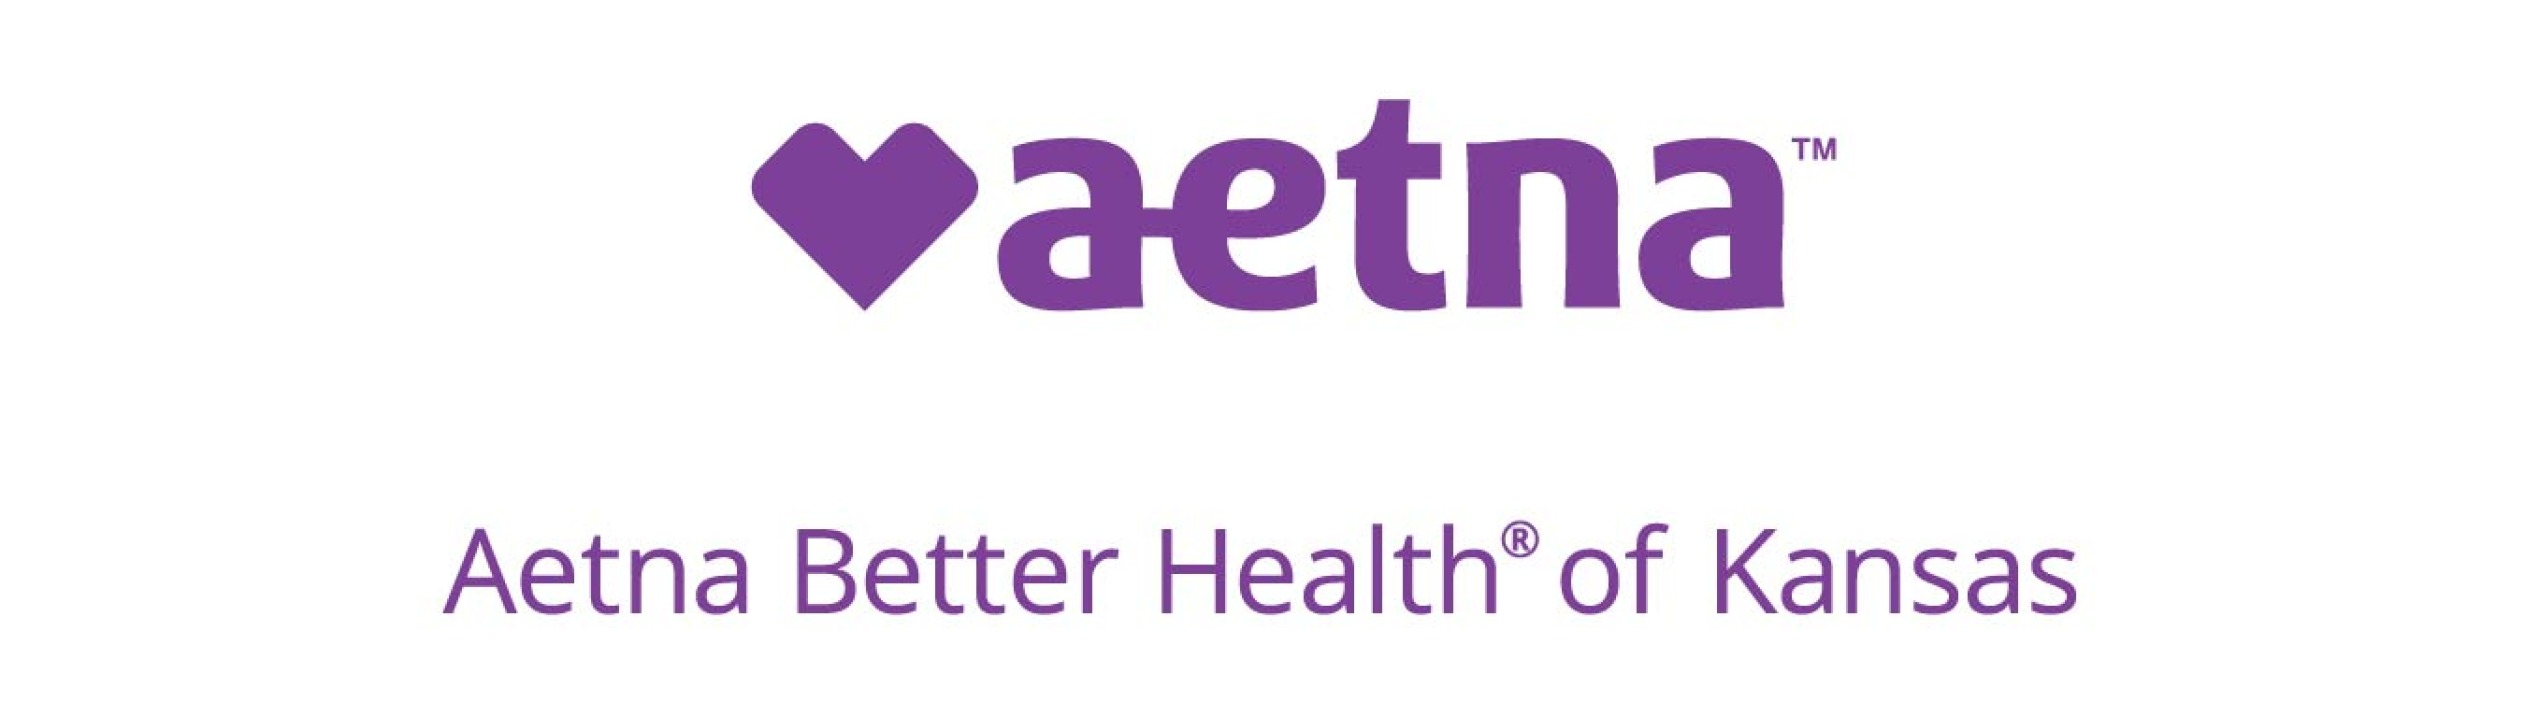 Logotipo de Aetna Better Health of Kansas